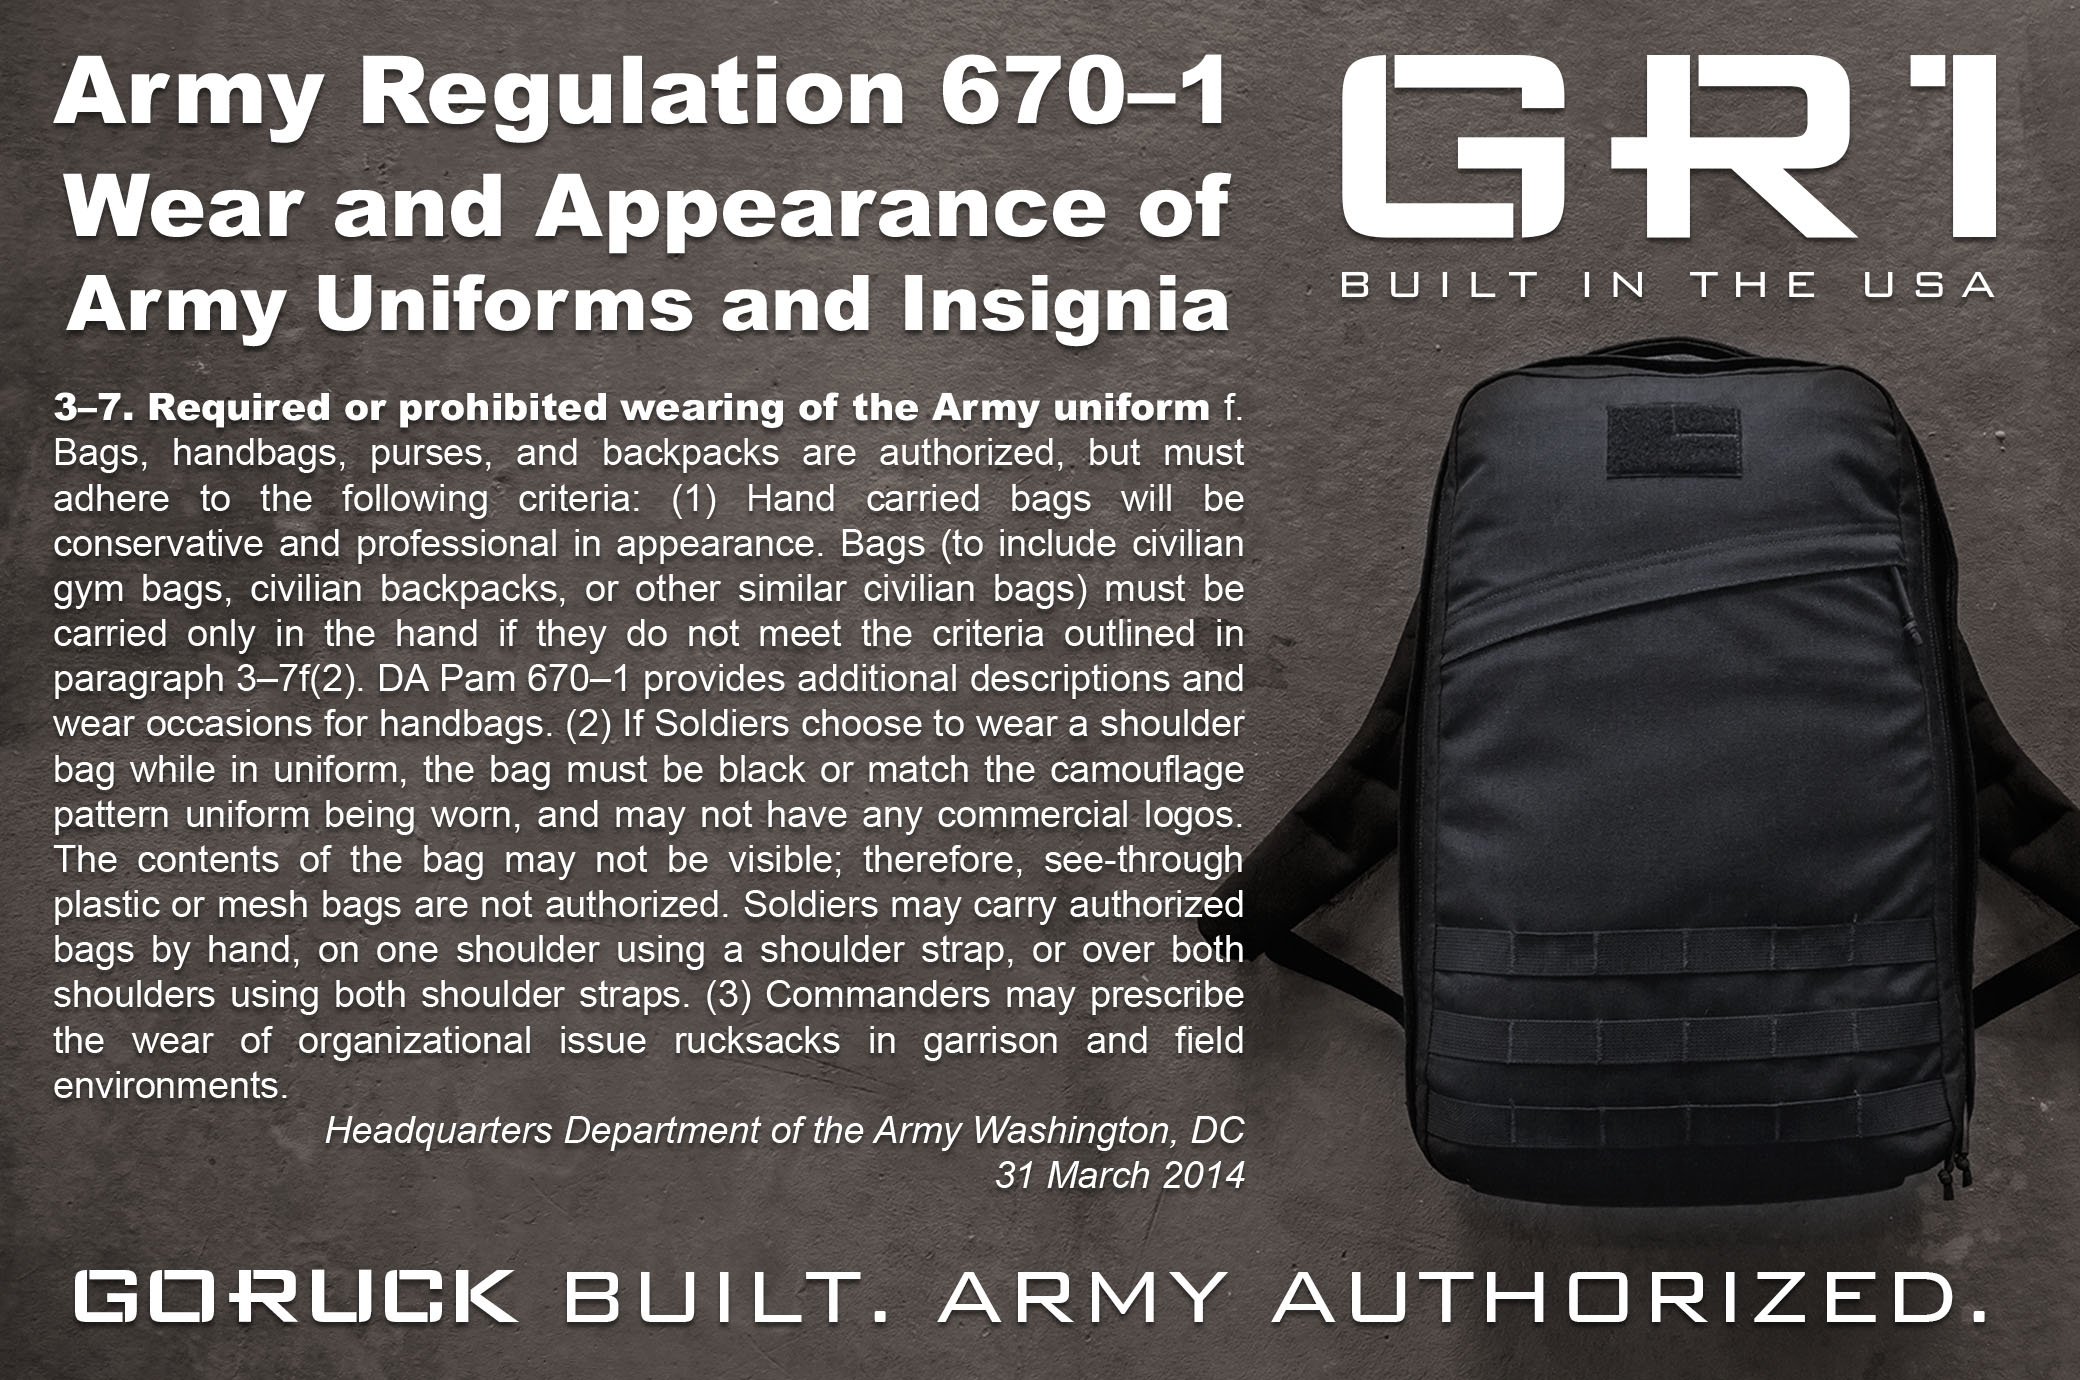 No Logos and Black Is the New Black Just Reference Army Regulation 670-1